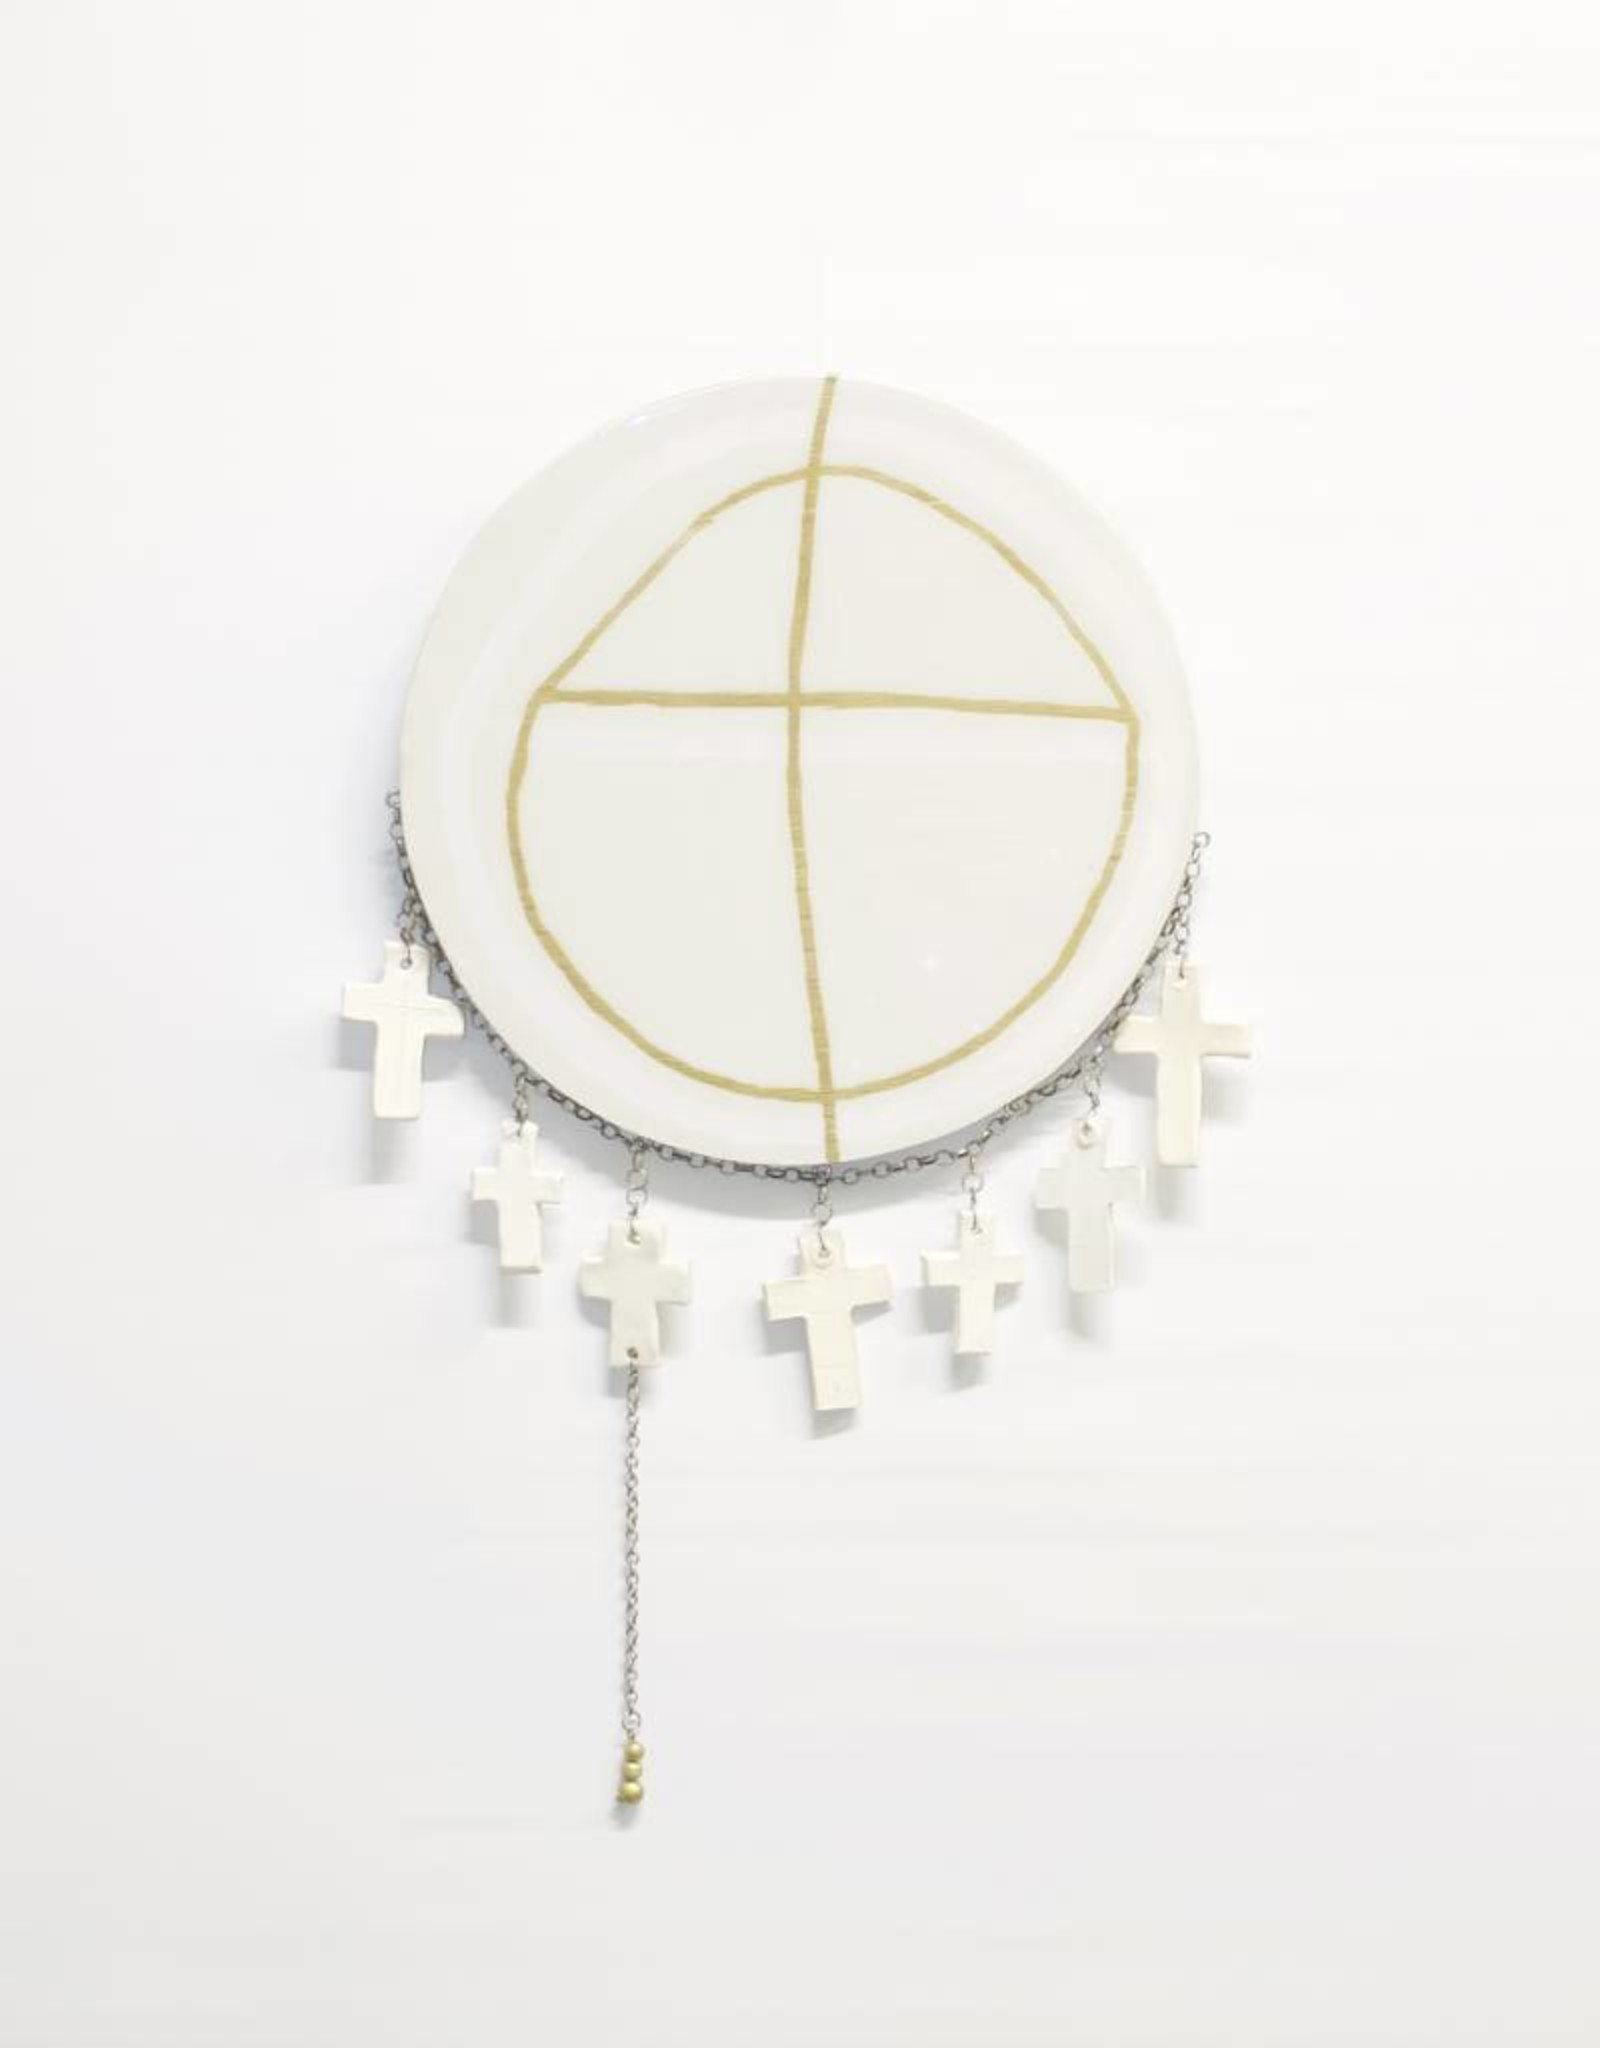 Entouquet Gold Design Circle Tile with Clay Crosses on Chain